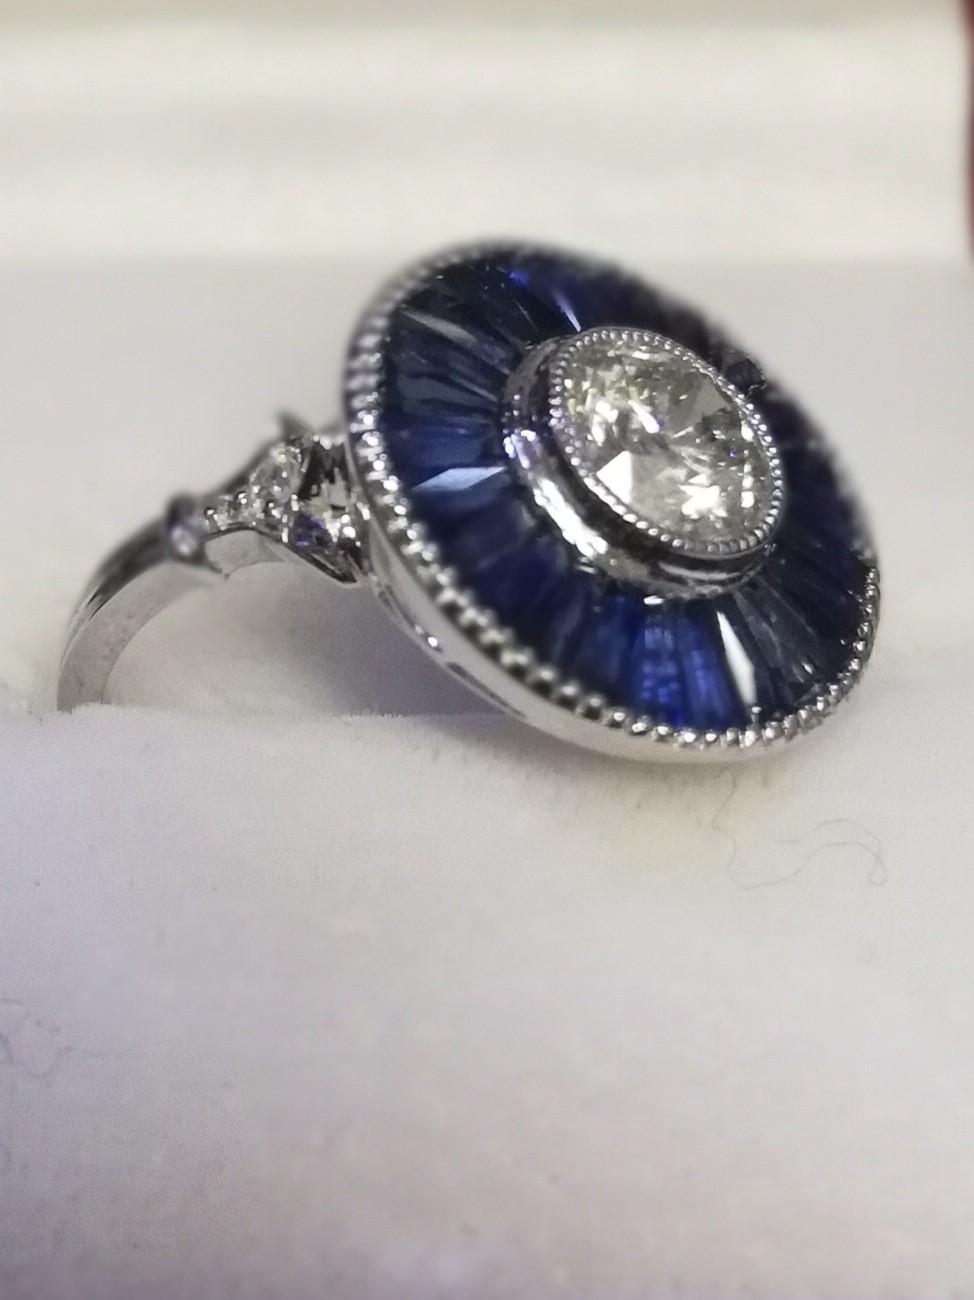 Large platinum target style ring set with central diamond and calibre cut sapphires - Image 3 of 3